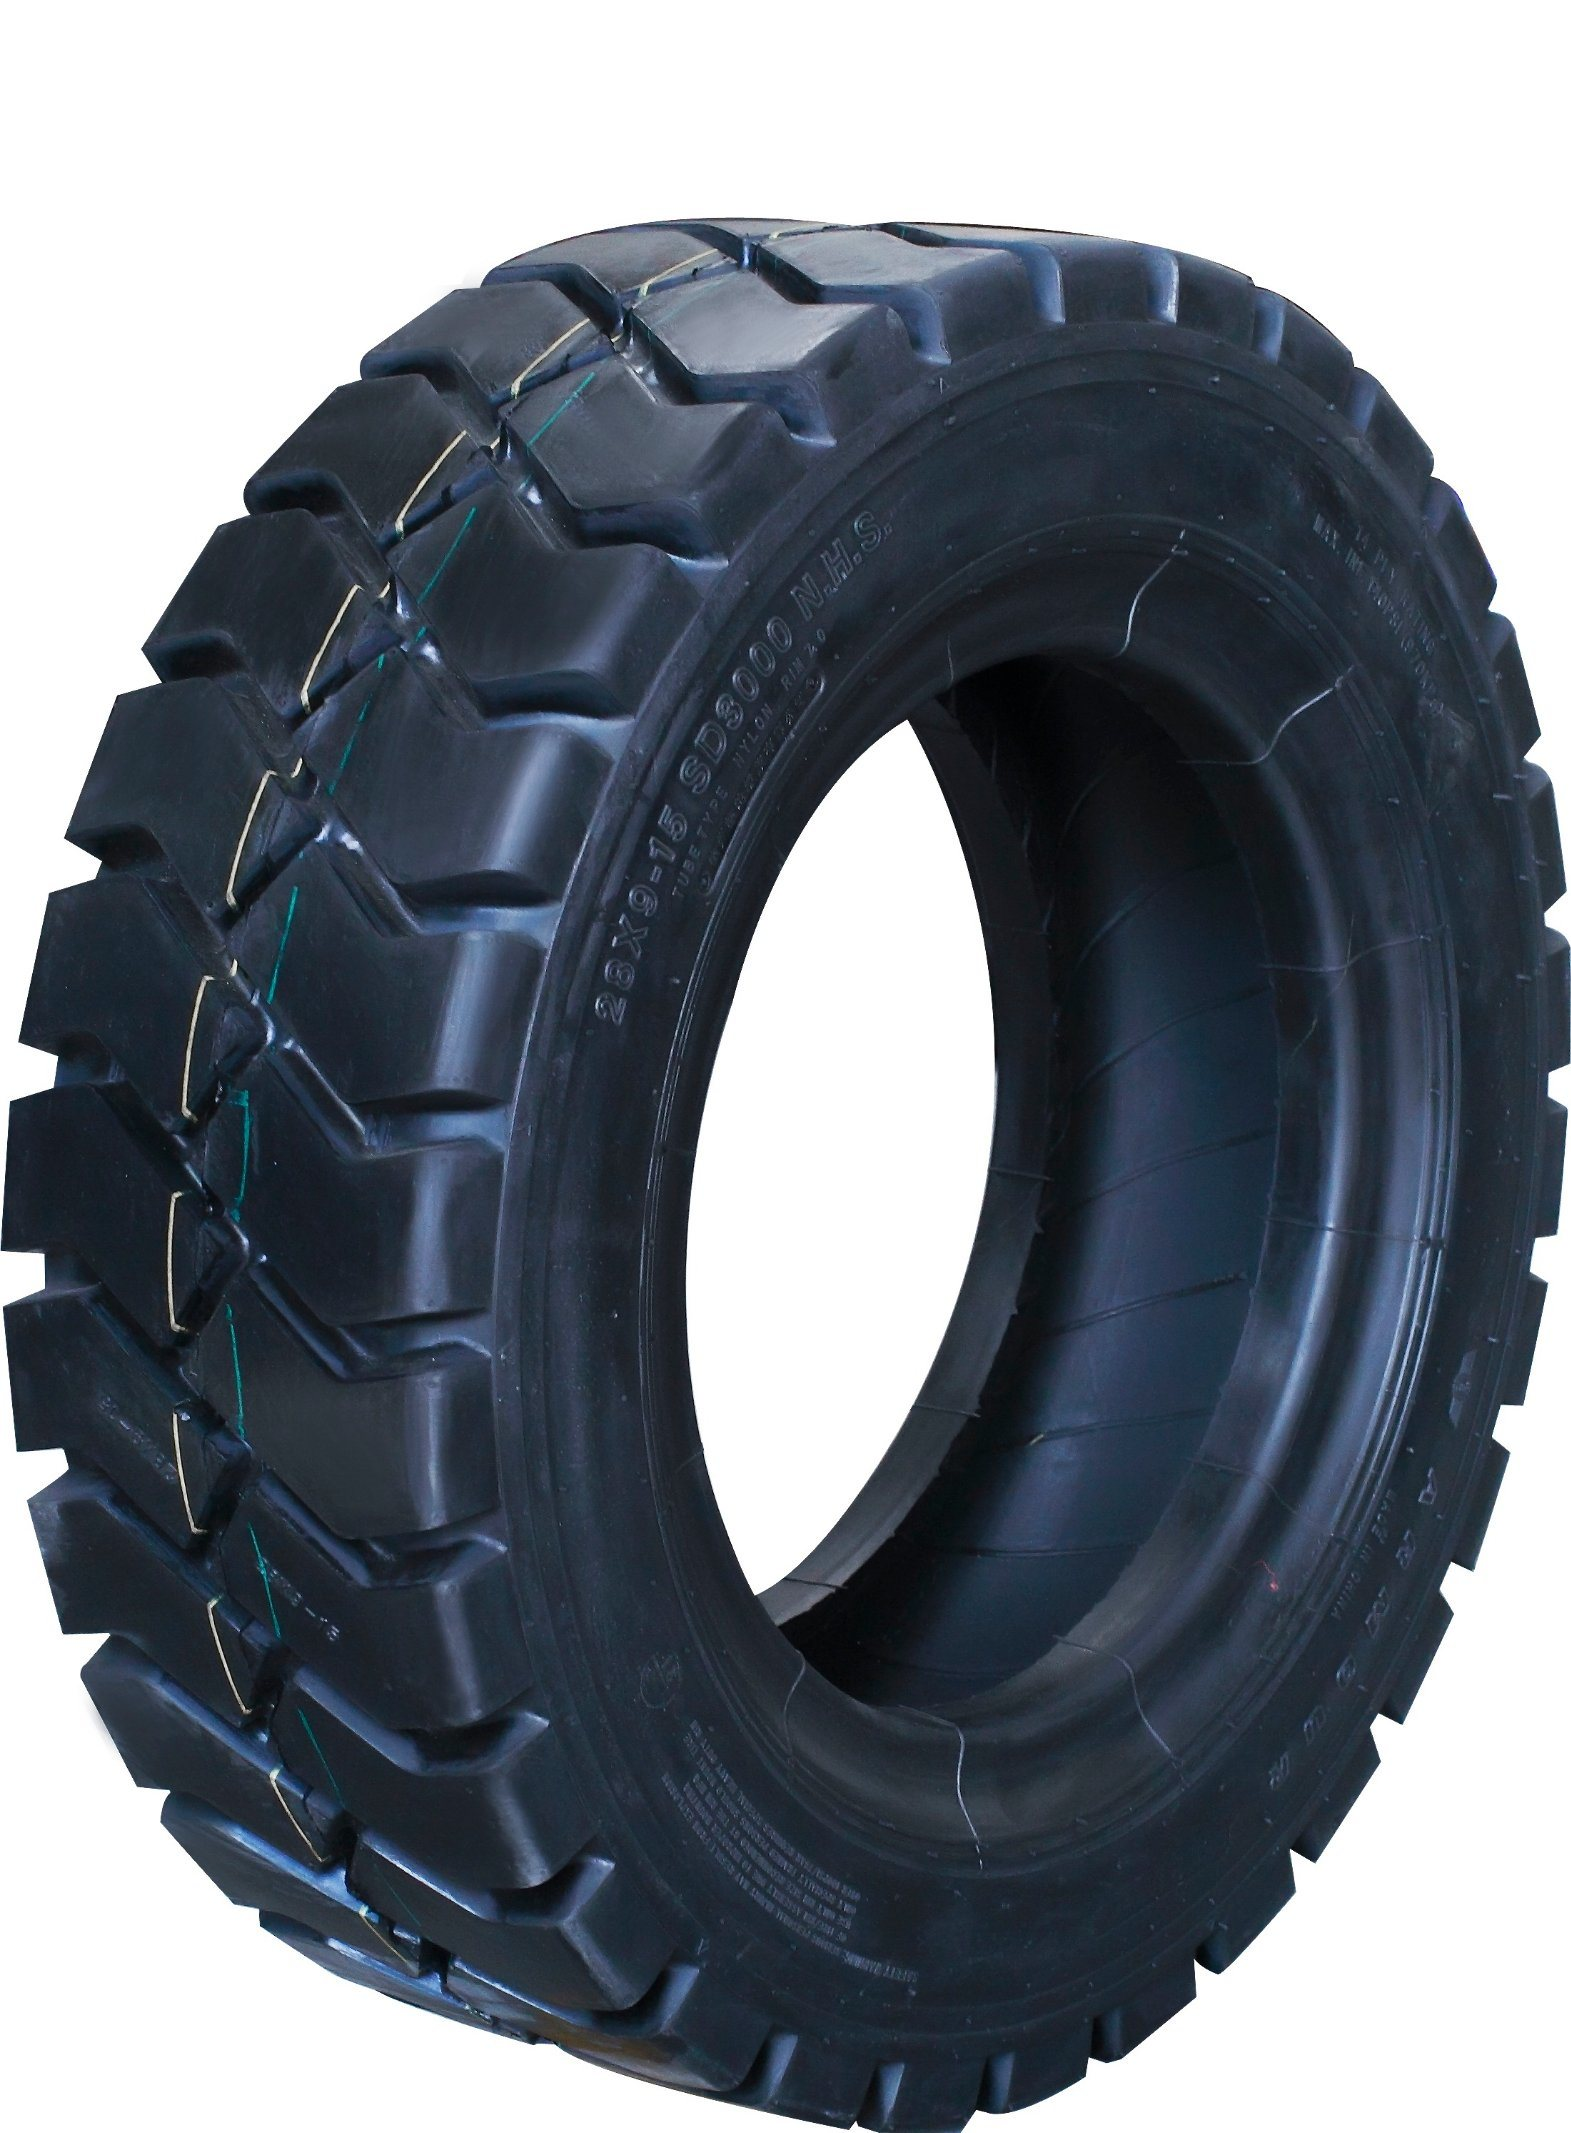 6.50-10 SD3000 Deep Tread Forklift Tire, OEM tire